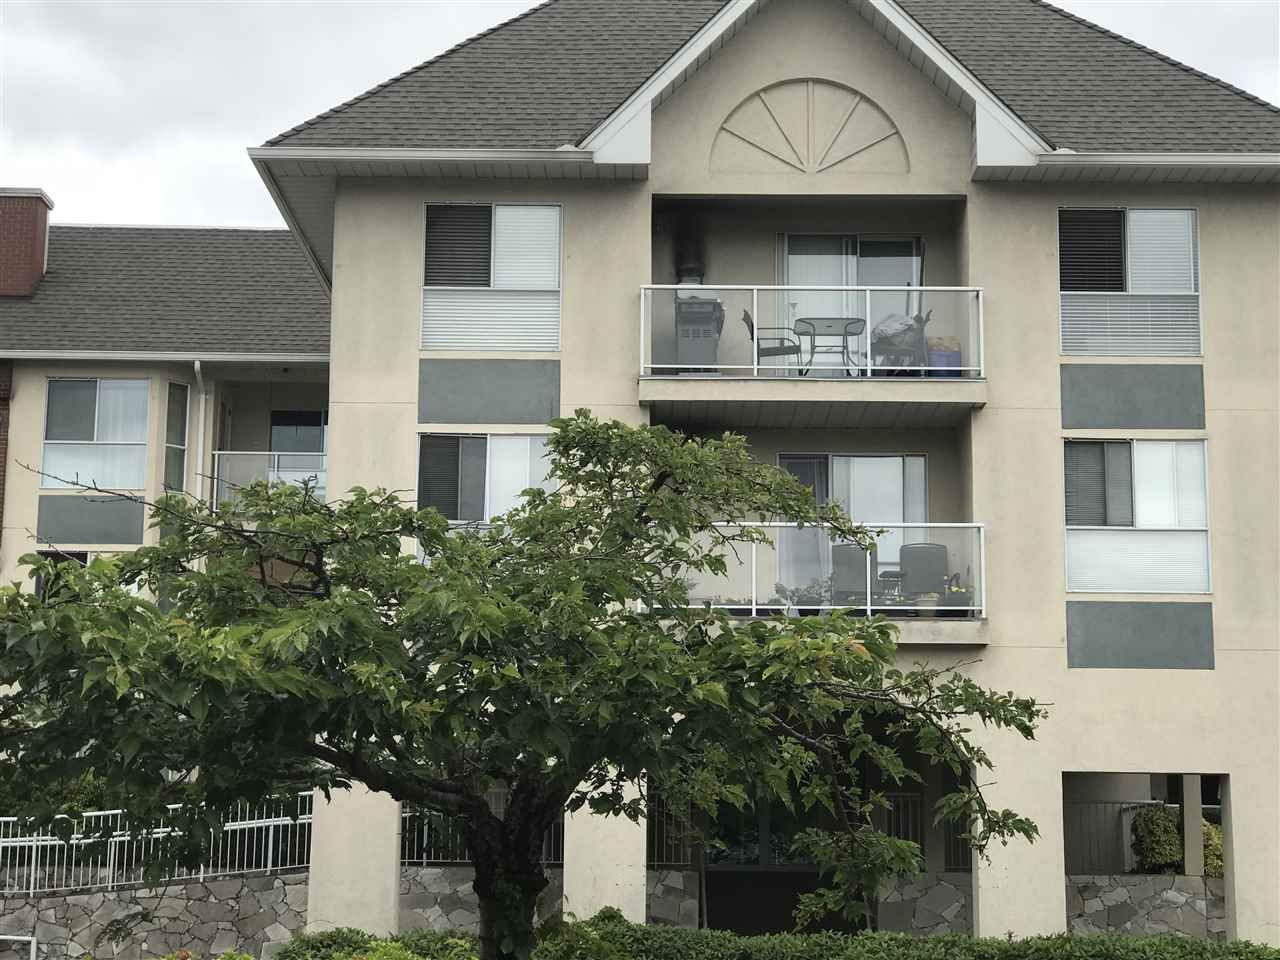 "Main Photo: 311 19835 64TH Avenue in Langley: Willoughby Heights Condo for sale in ""WILLOWBROOK GATE"" : MLS®# R2272156"